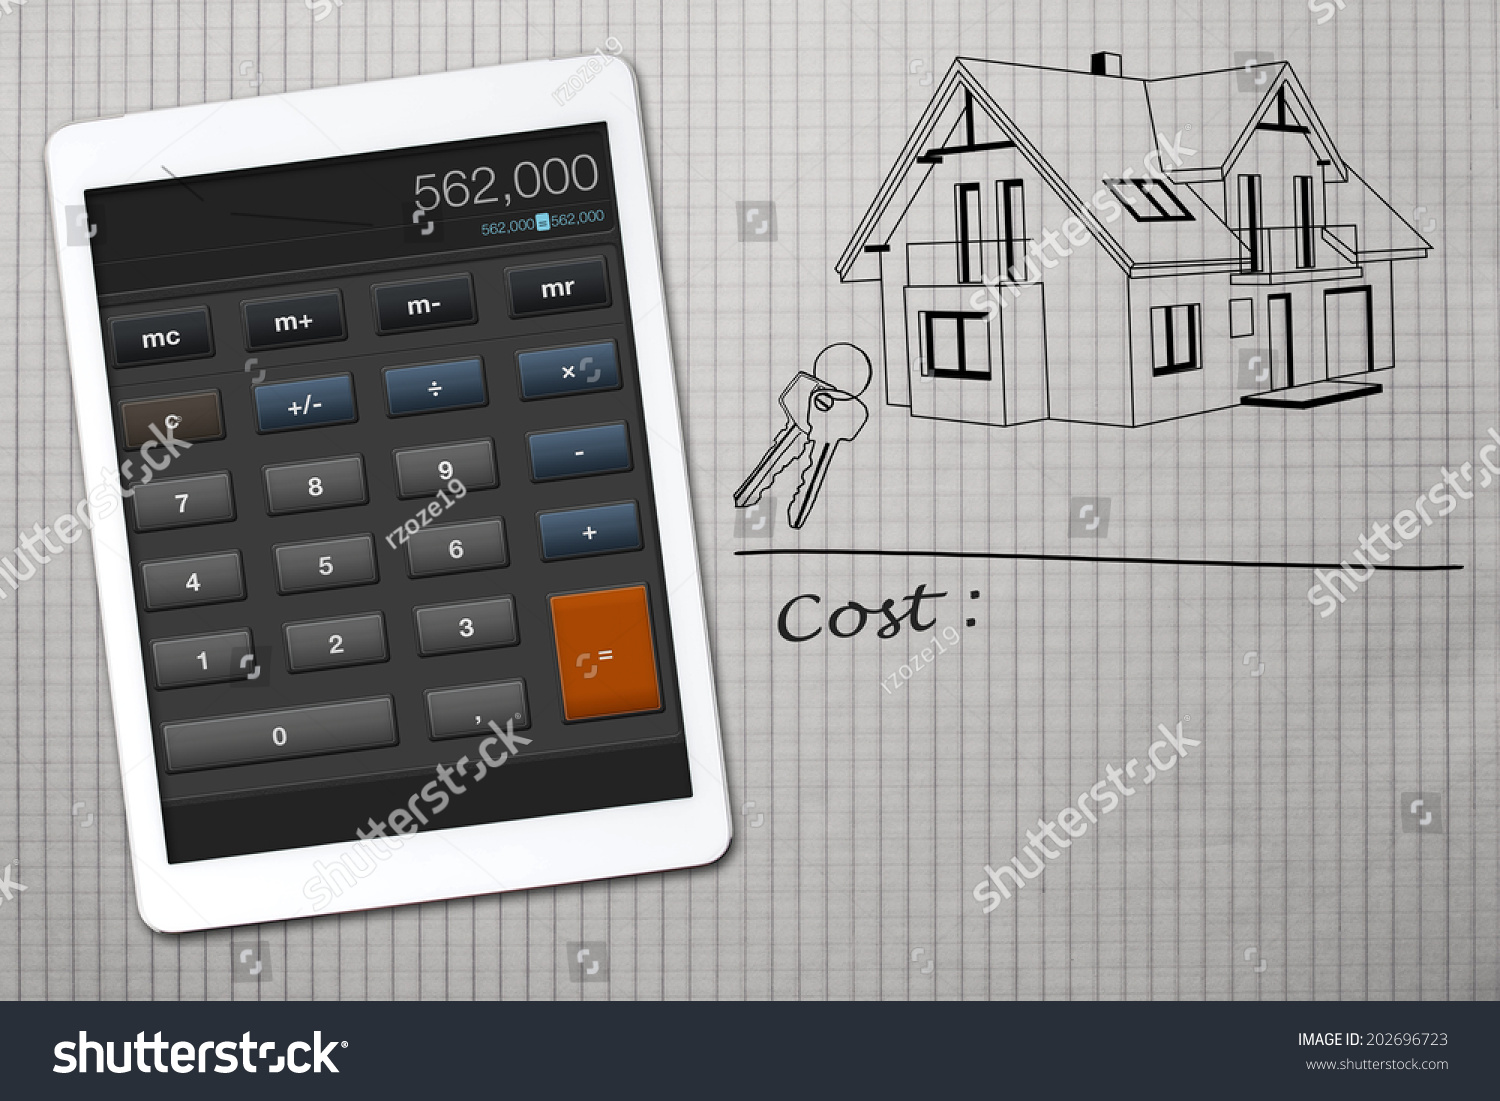 Home Construction Cost Calculator Stock Photo 202696723